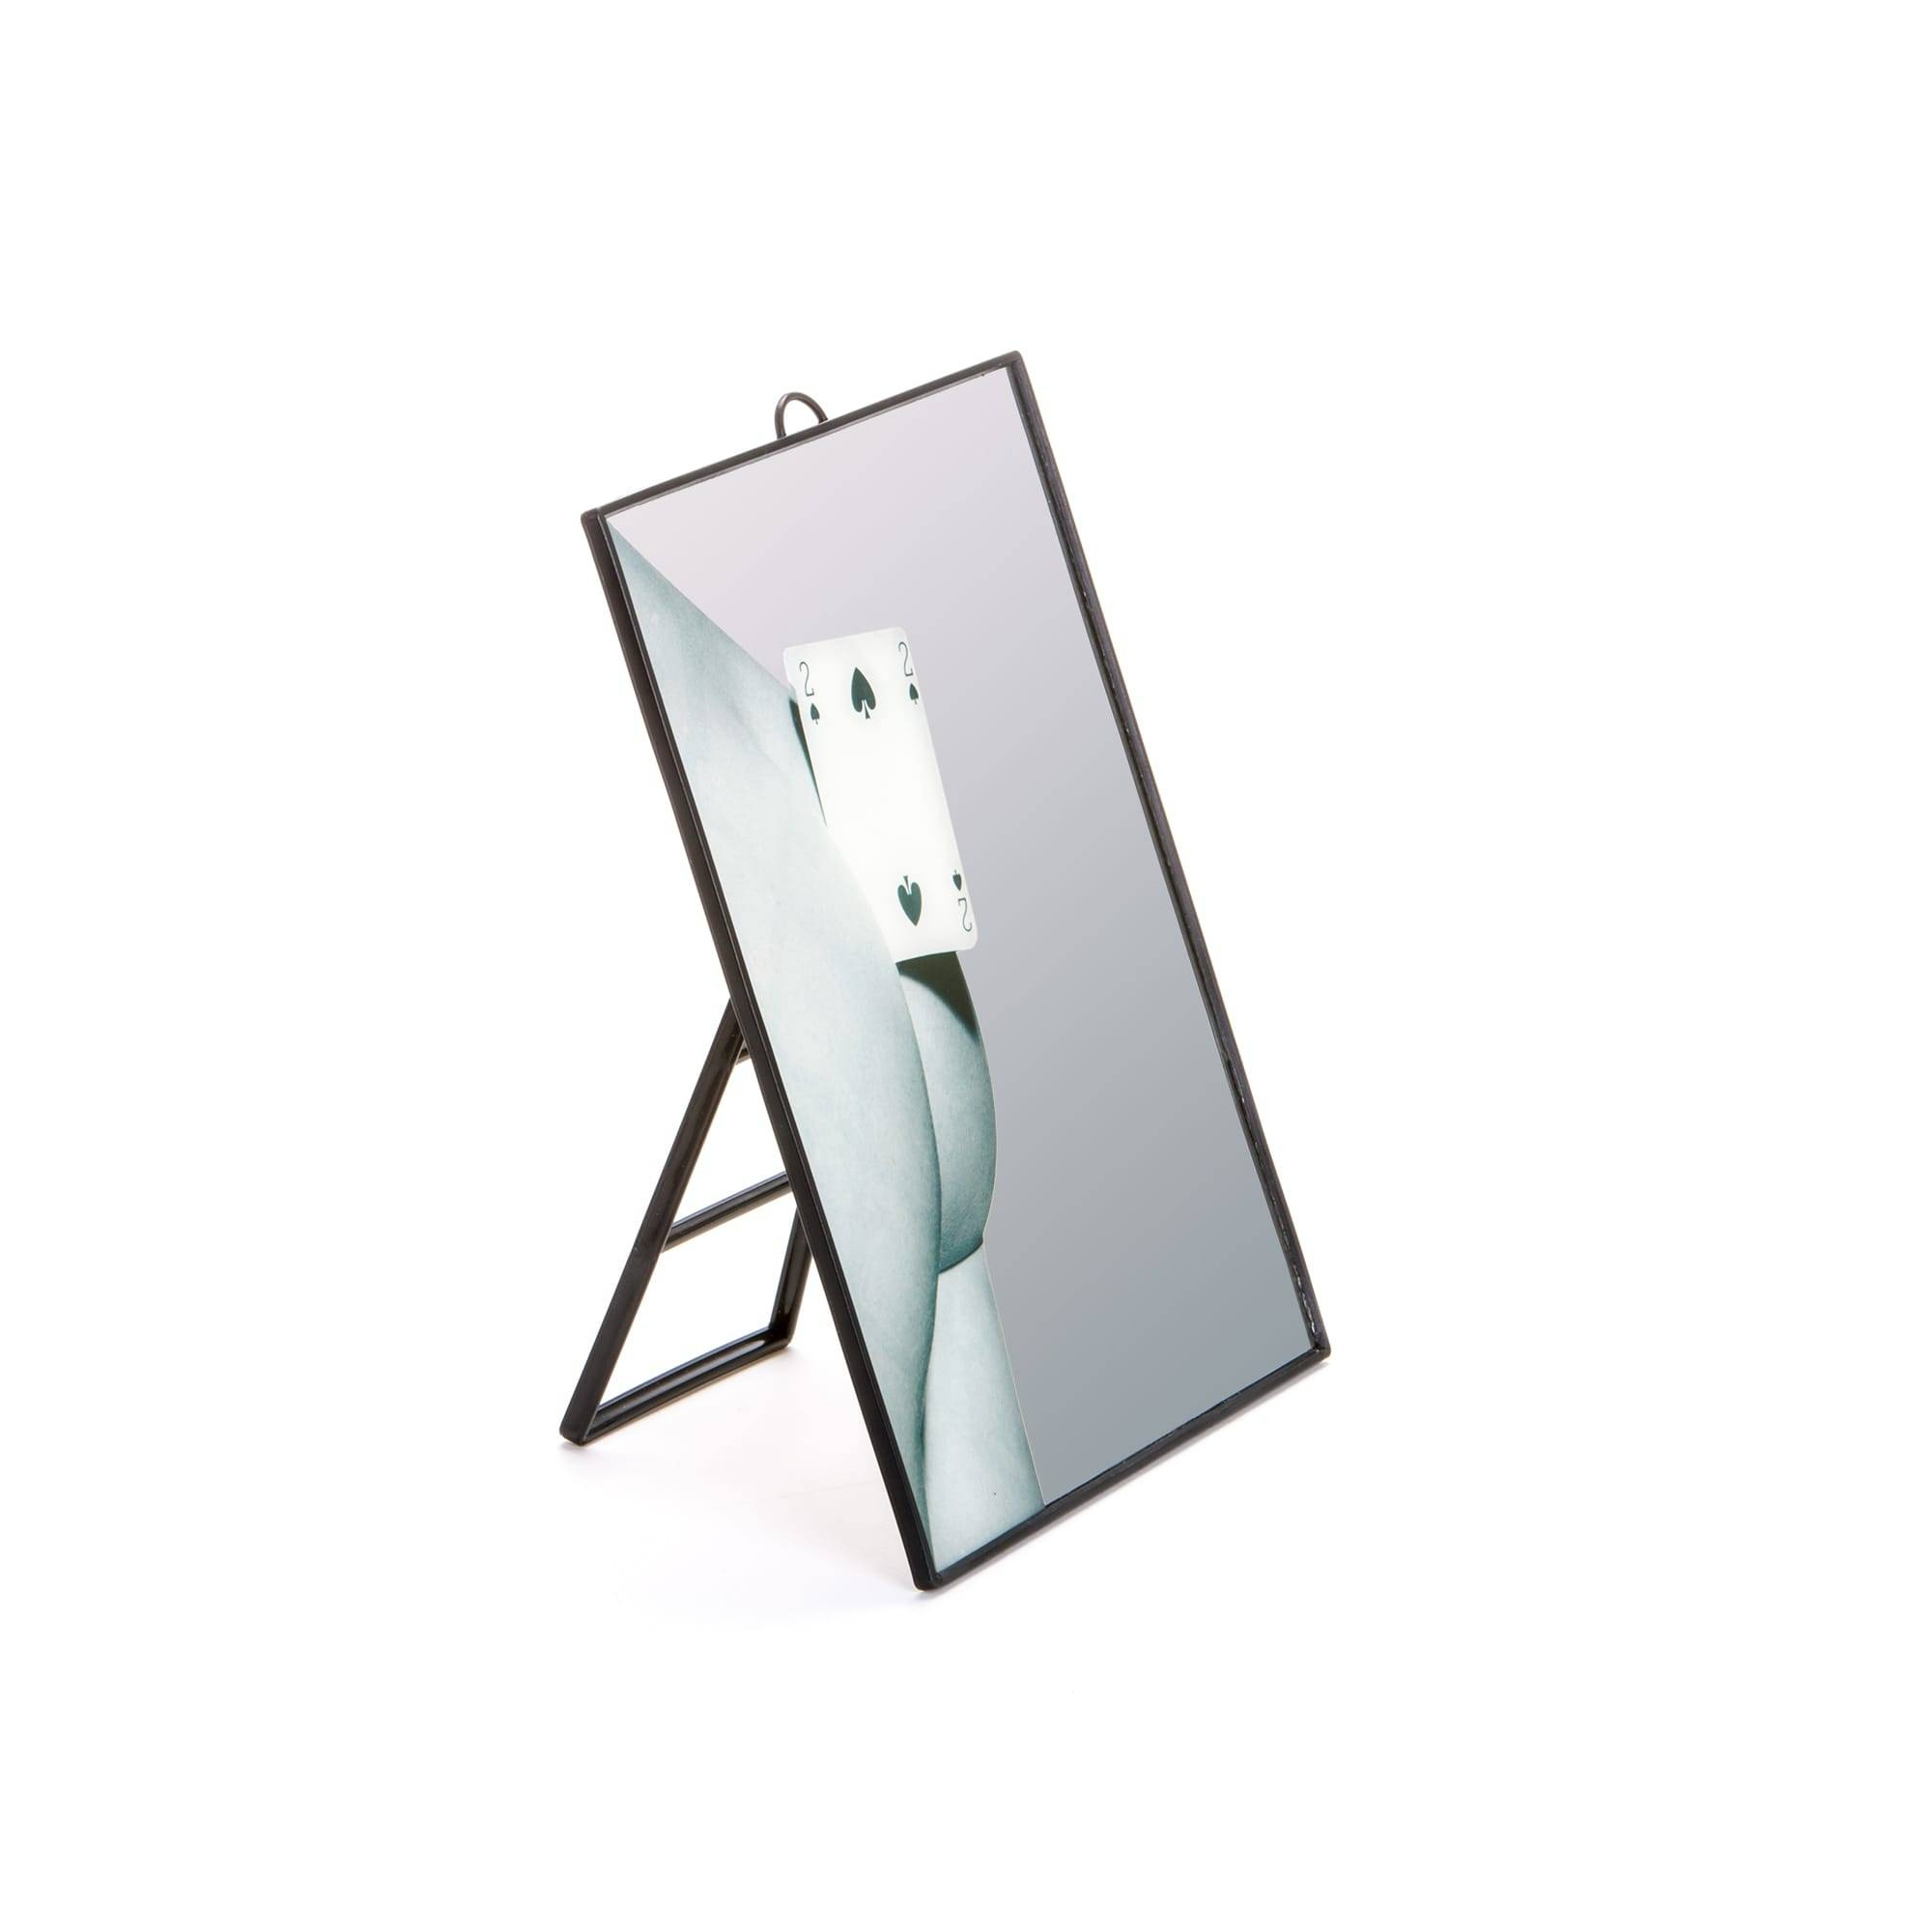 Mirror Small Two Of Spades – Seletti intended for Small Mirrors (Image 4 of 15)